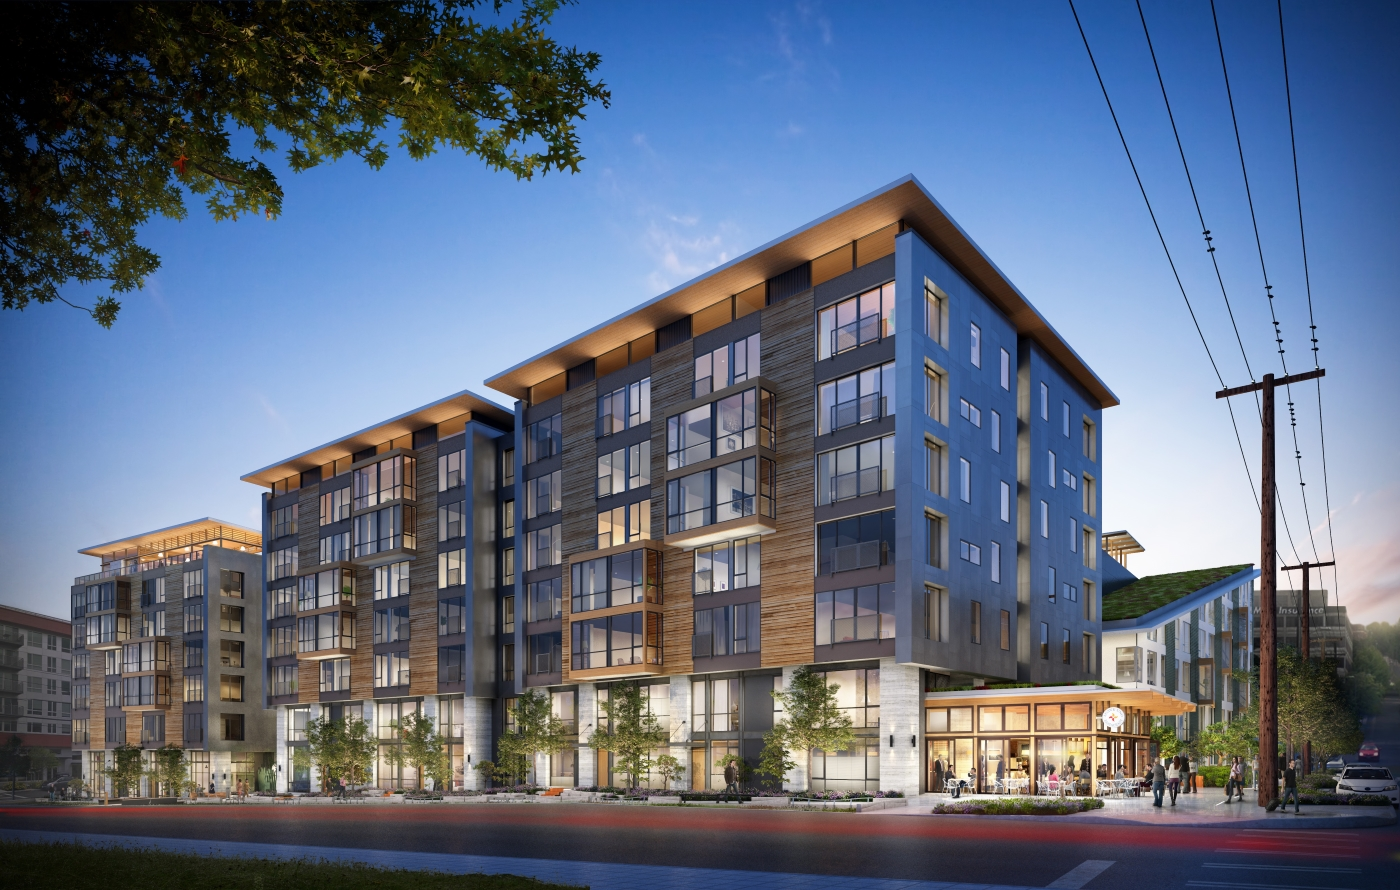 seattle architects win awards for multifamily housing projects